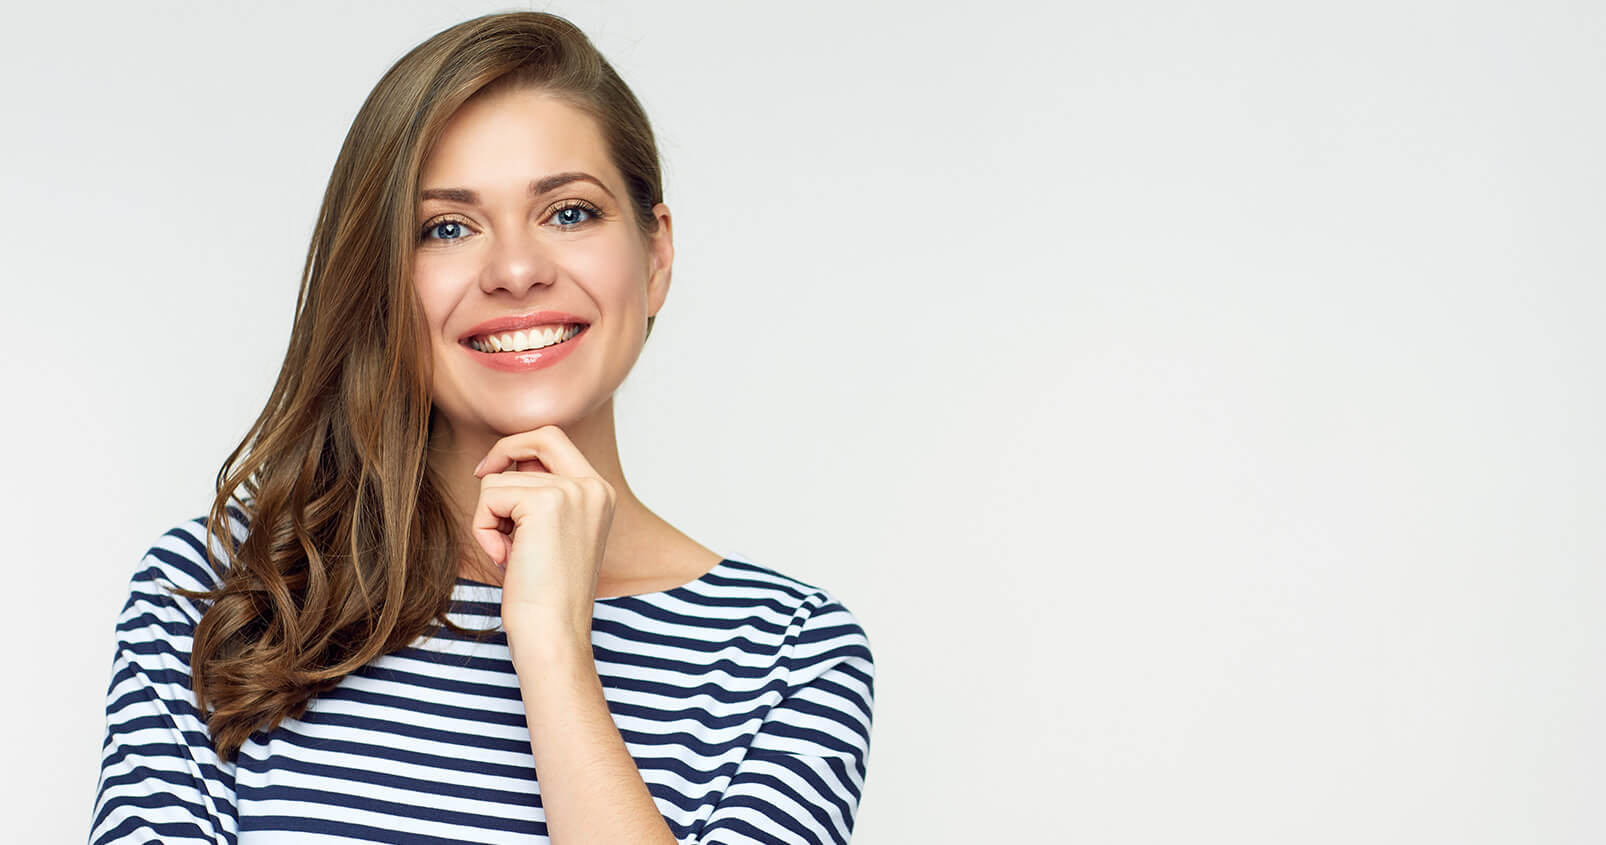 Dentist in Azusa, Ca Area Describes the Advantages of Mercury-free Dental Fillings